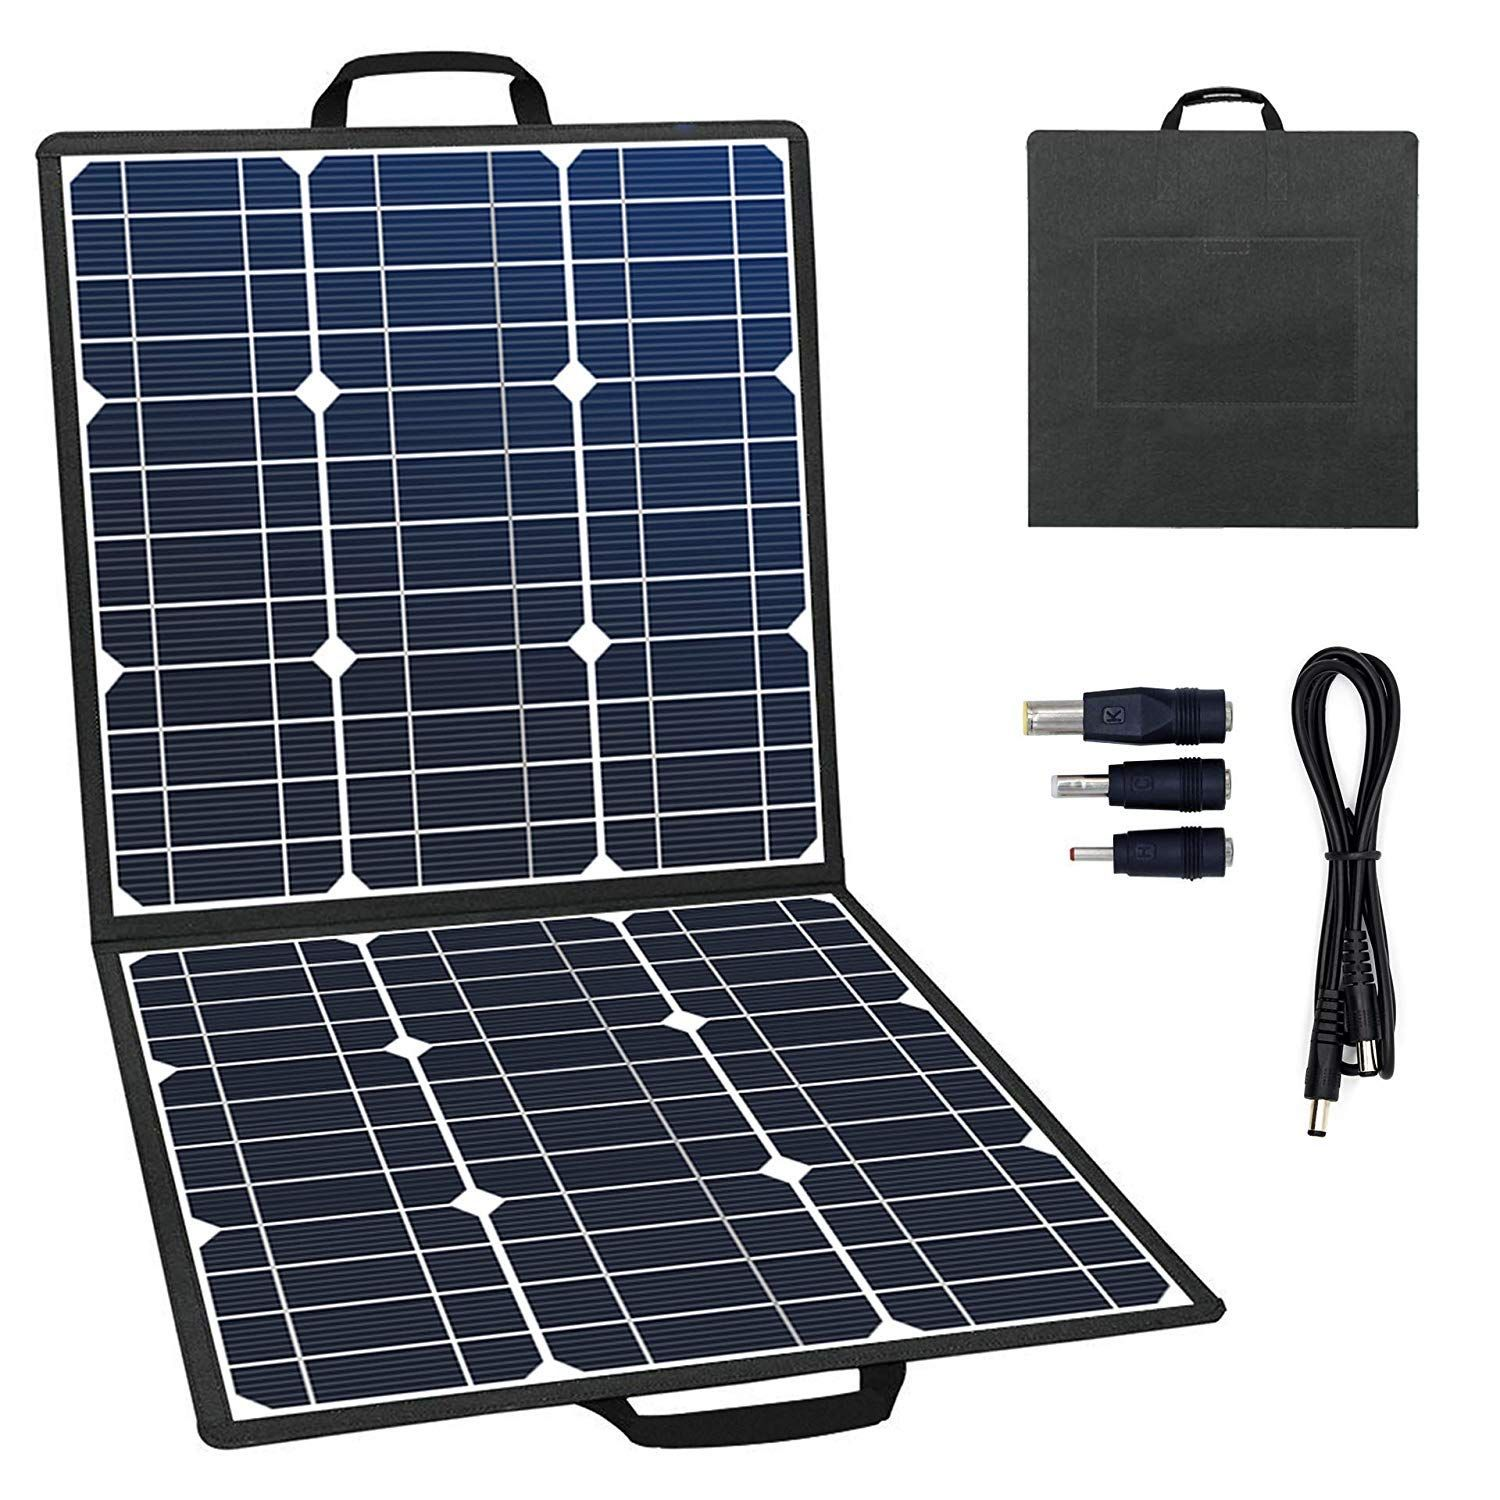 Gofort Portable Foldable Solar Panel Charger 50w 18v Solar Charger For Suaoki Jackery Enkeeo Rockpals Portable P Solar Panel Charger Solar Panels Solar Charger